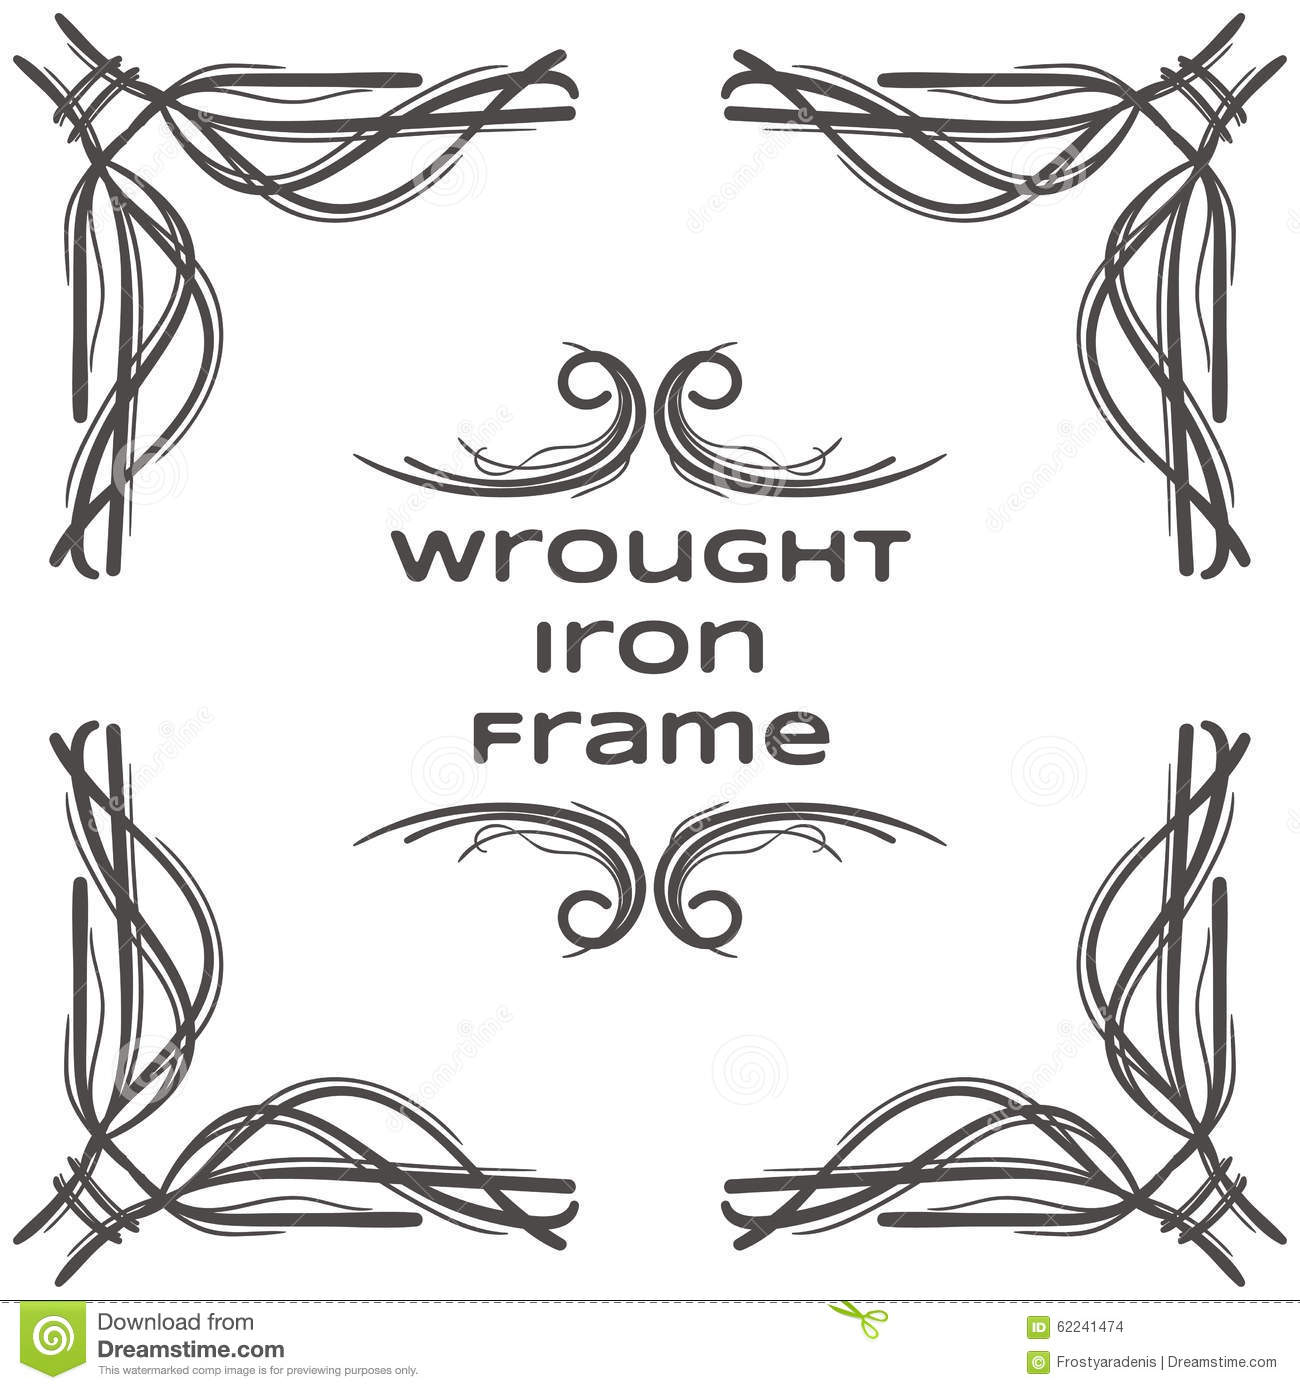 Wrought Iron Frame Five Cartoon Vector